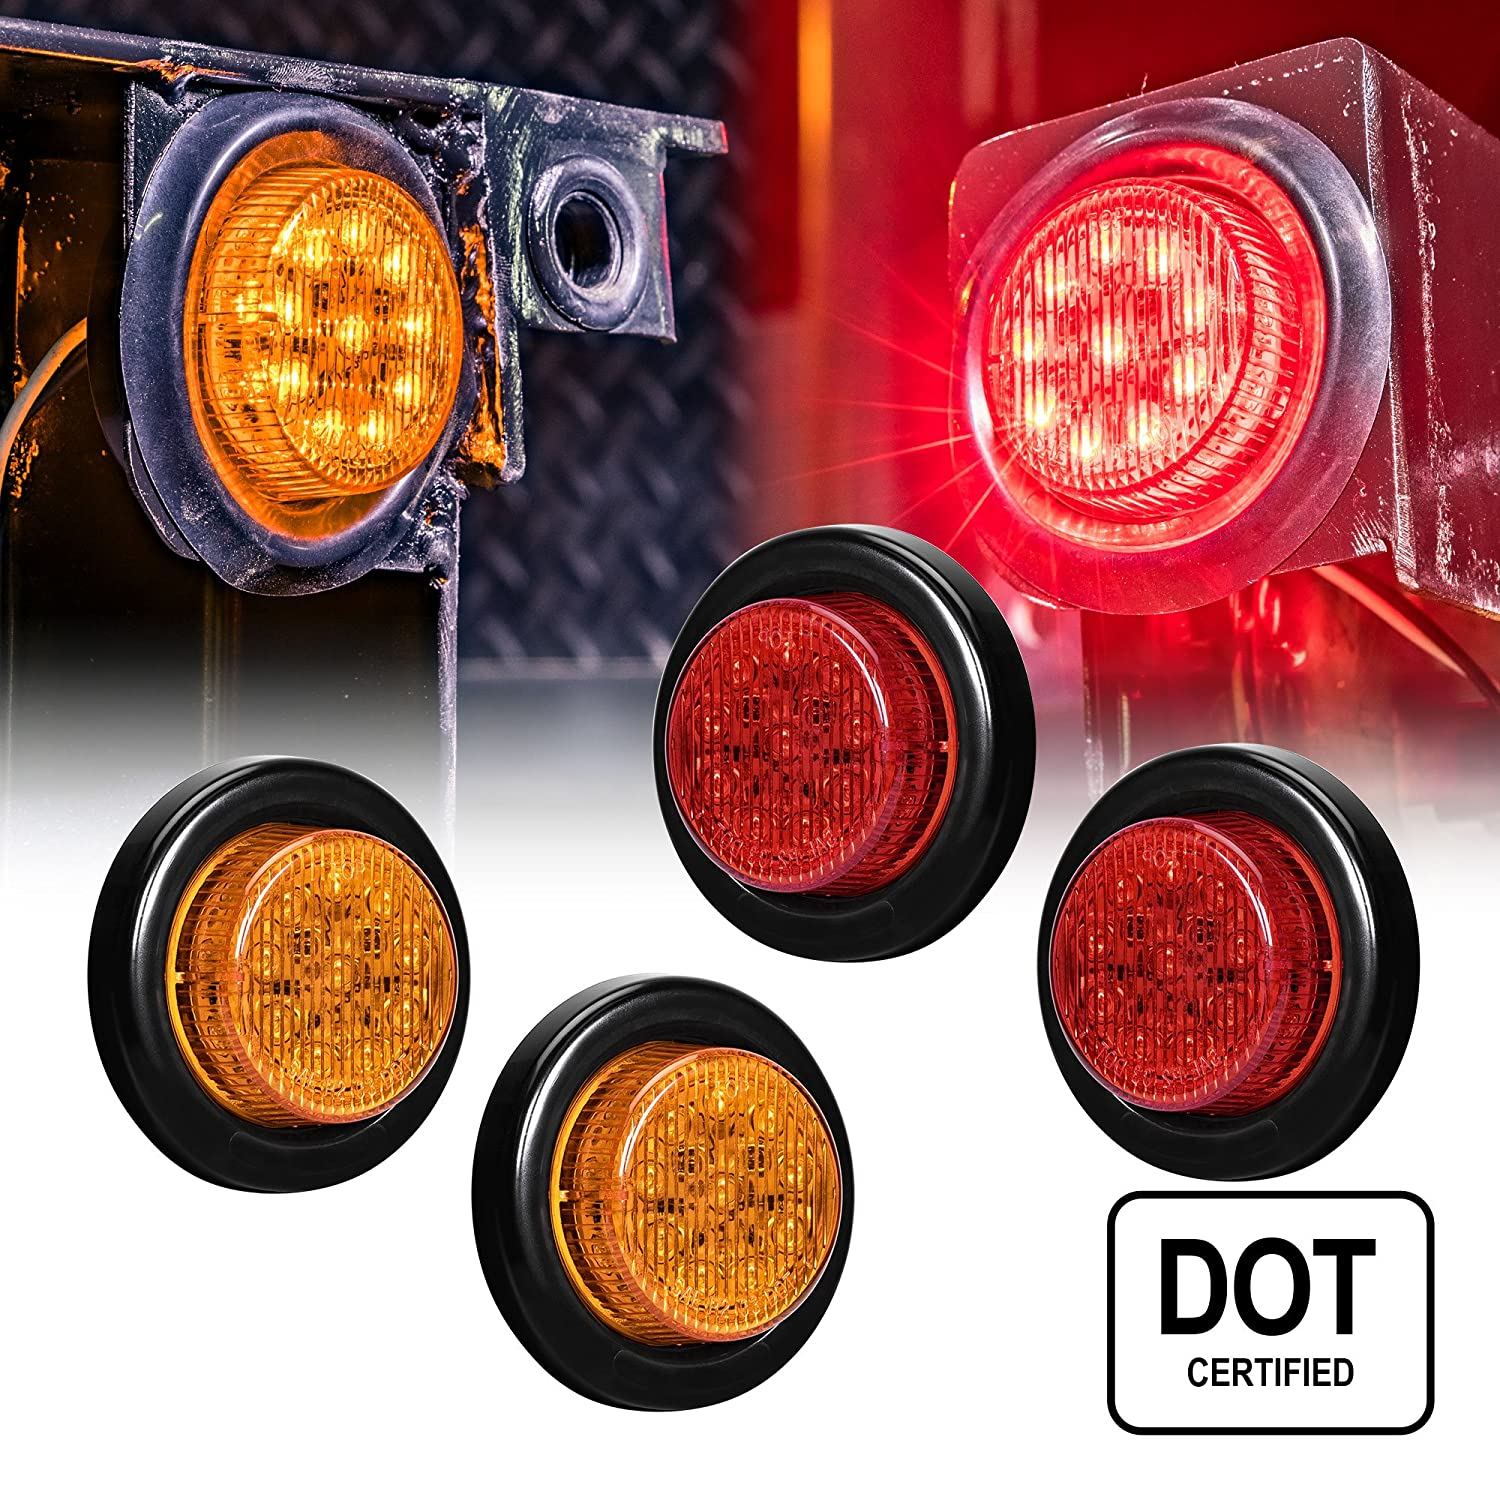 "4 PC OLS 2"" Round LED Clearance Light Side Marker - Two in One Reflector and Clearance Light [Polycarbonate Reflector] [10 LEDs] [Rubber Grommet] [IP 67] for Trailers - 2 Red and 2 Amber"